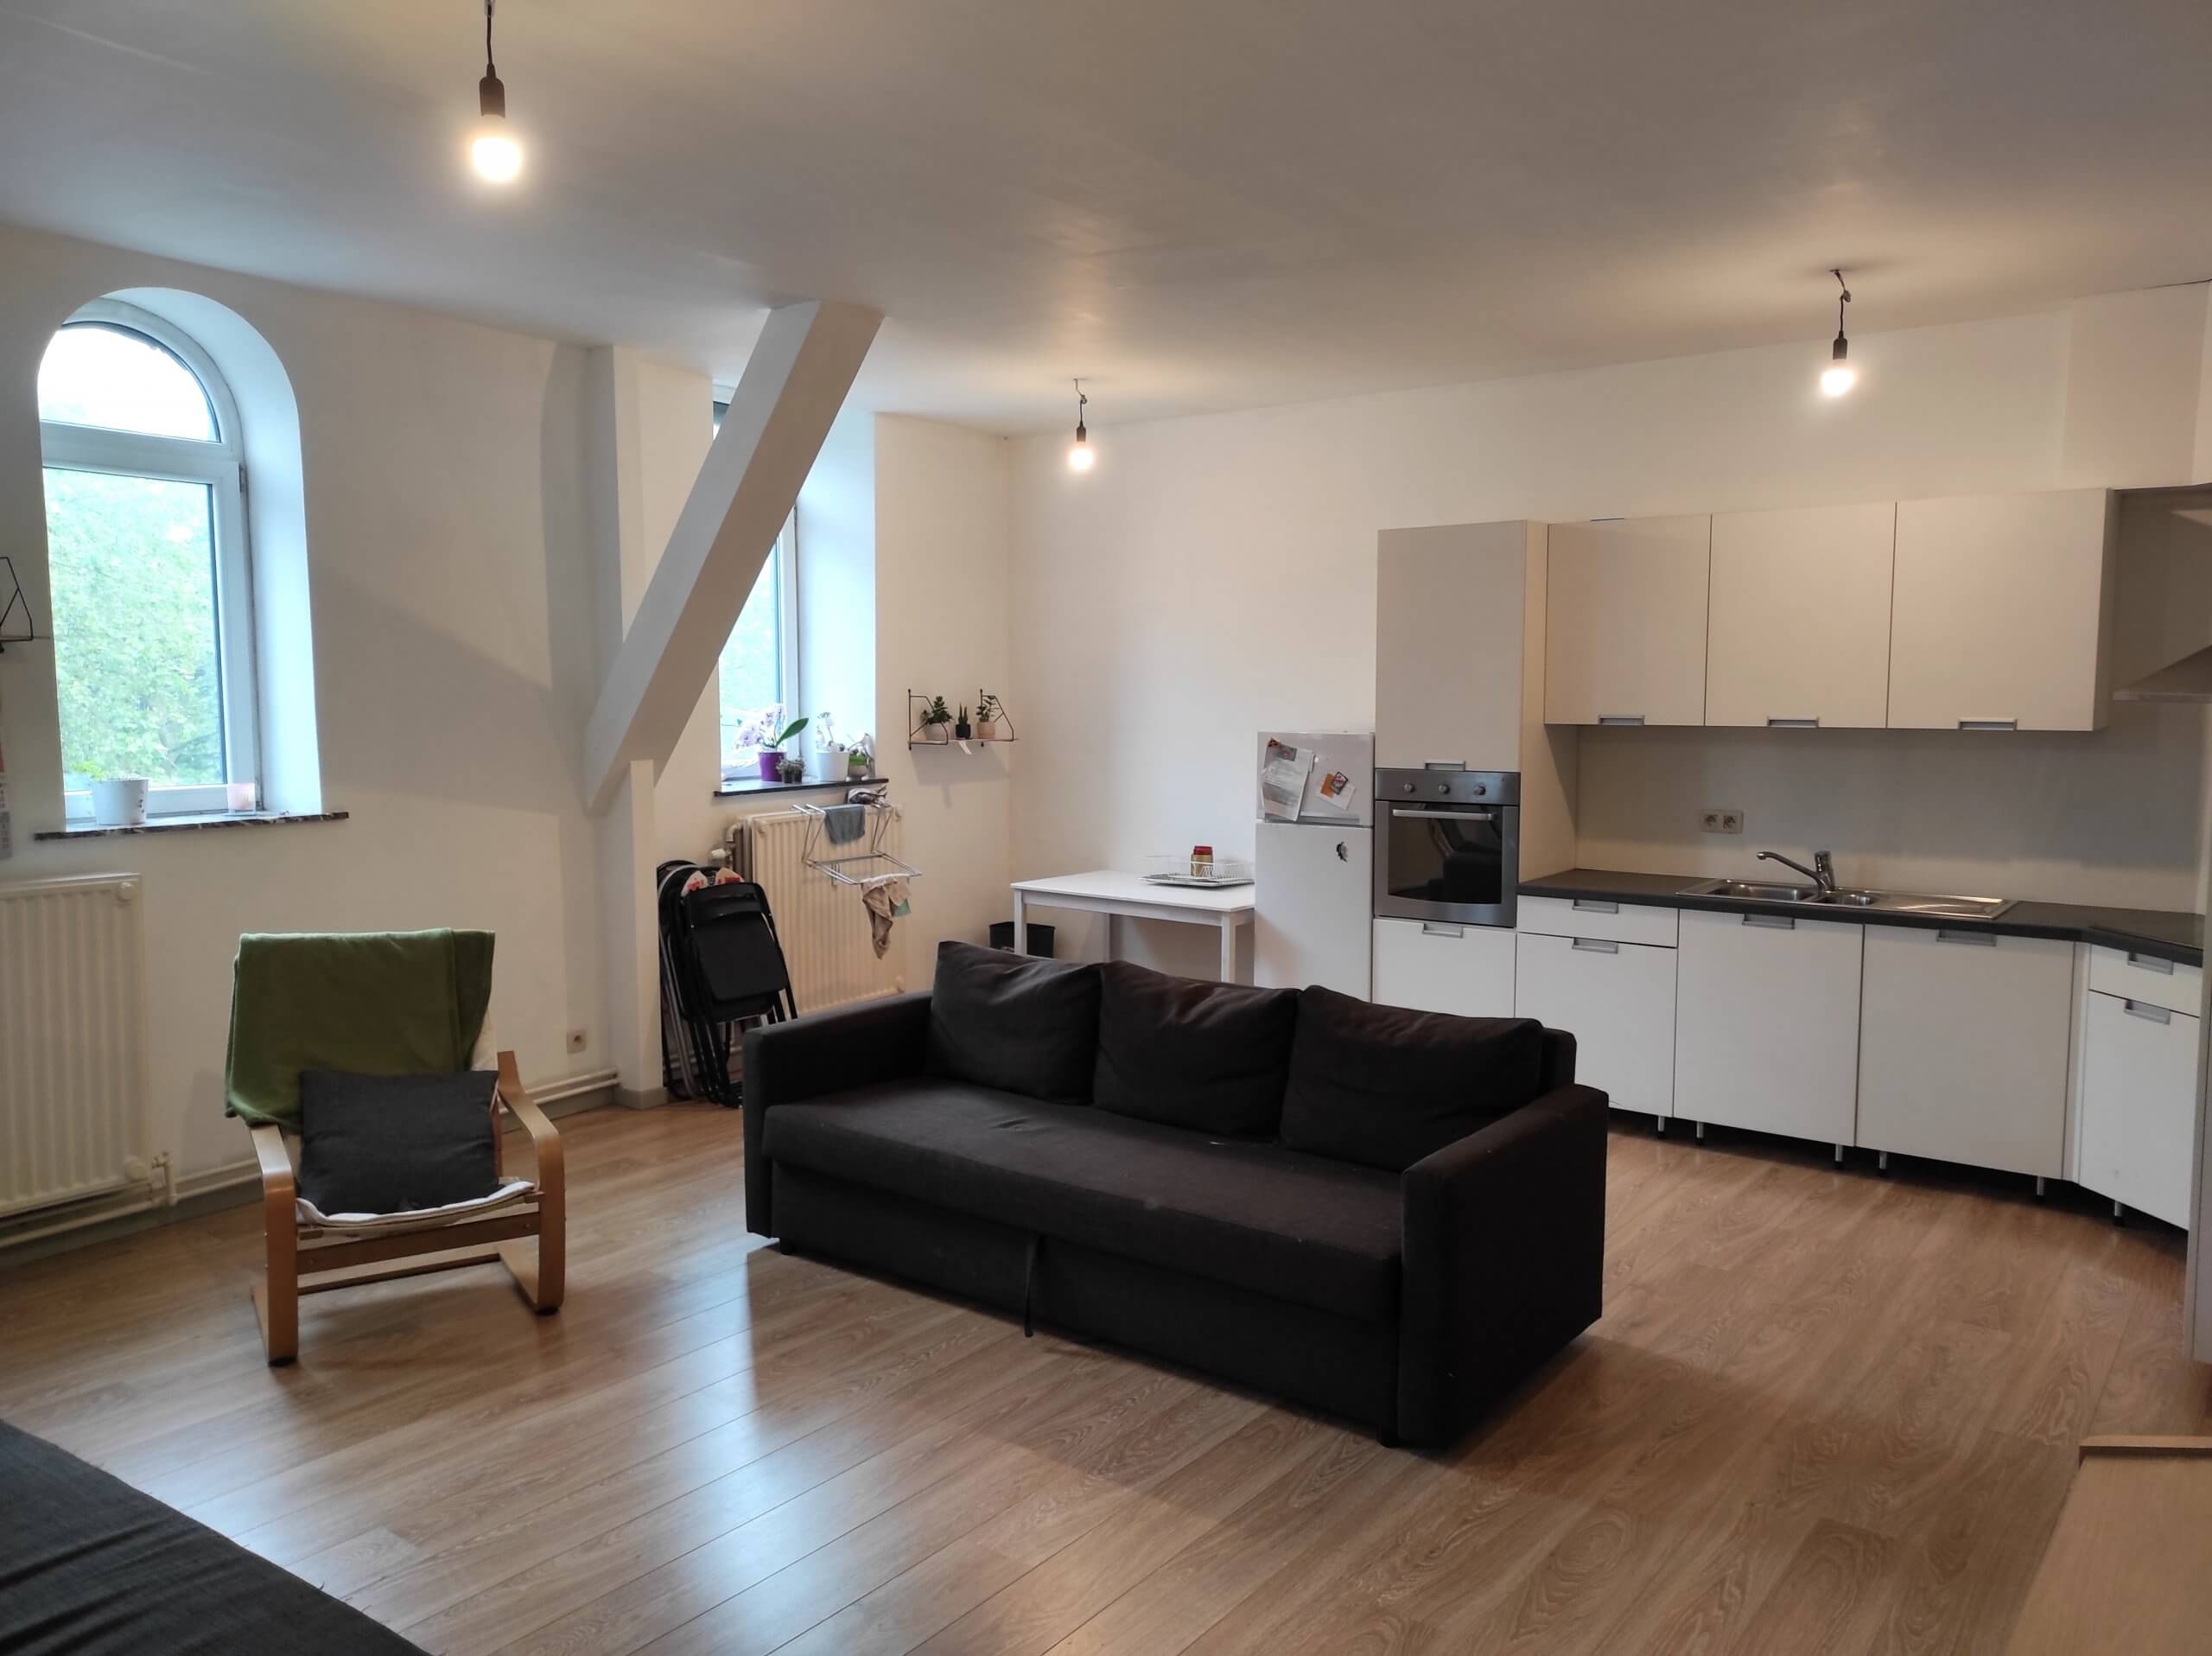 Accommodation: Room for erasmus students in Liège in residence 1